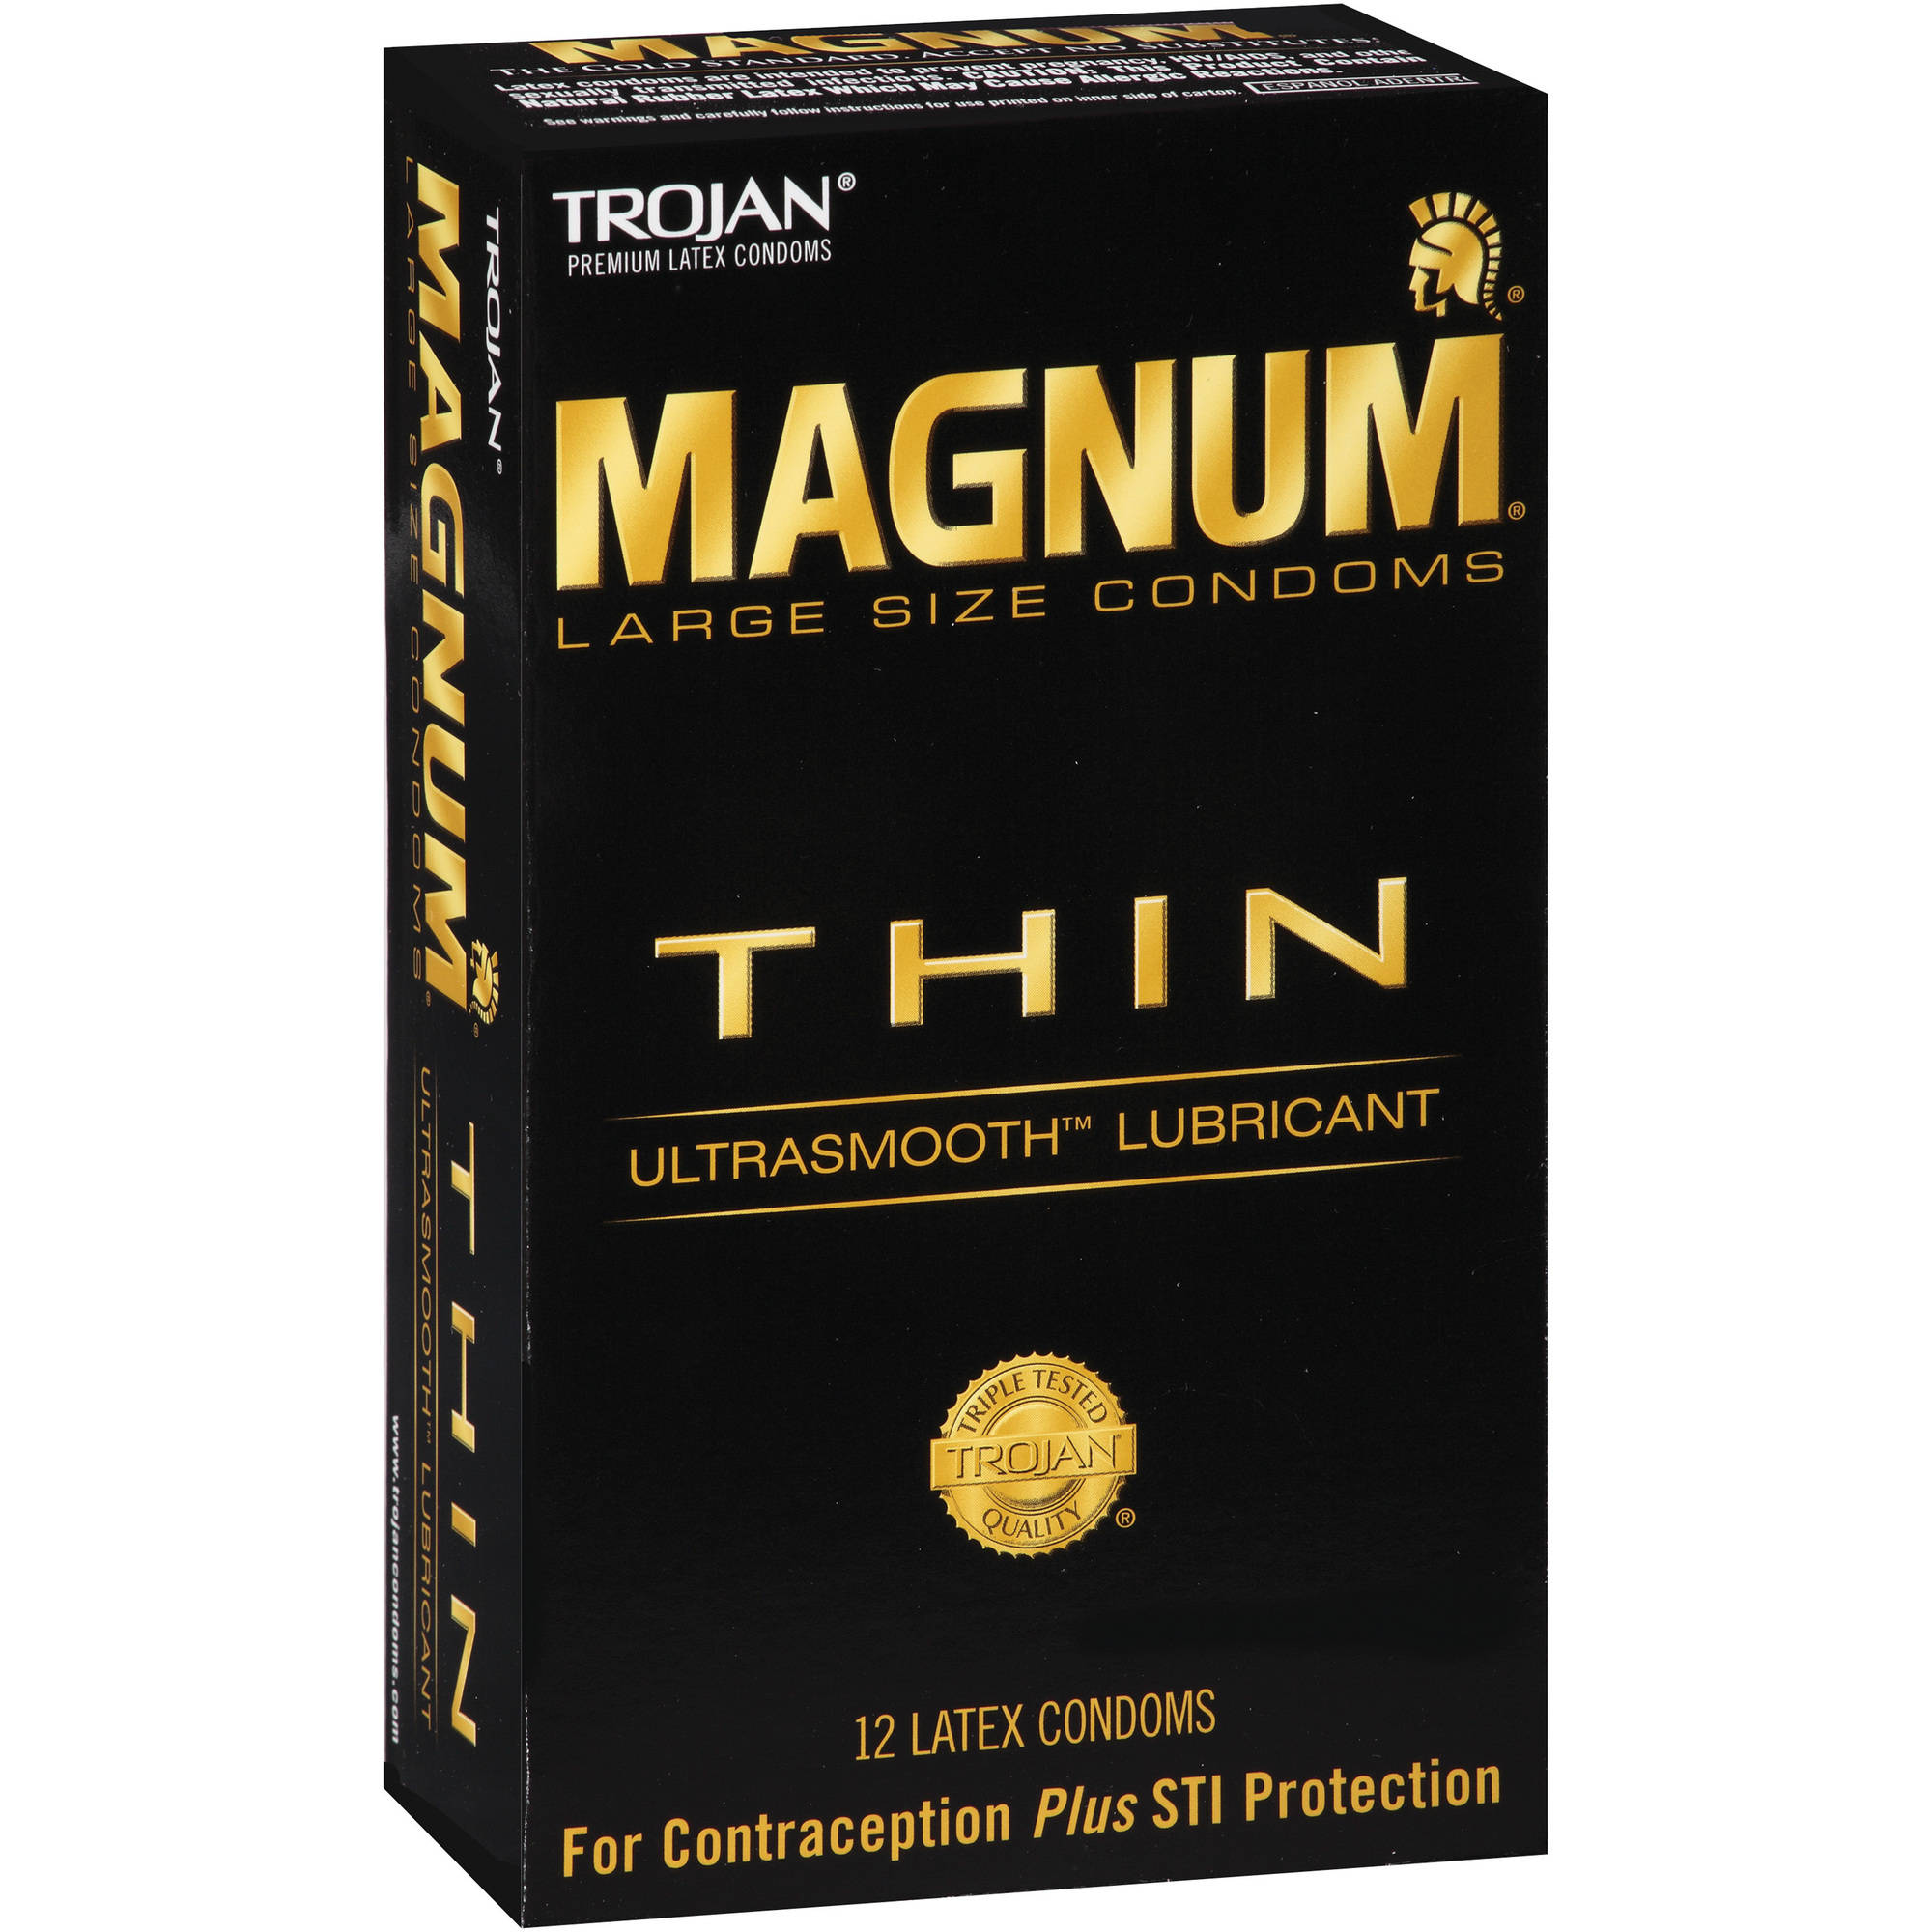 Trojan Magnum Thin Latex Condoms, 12 count